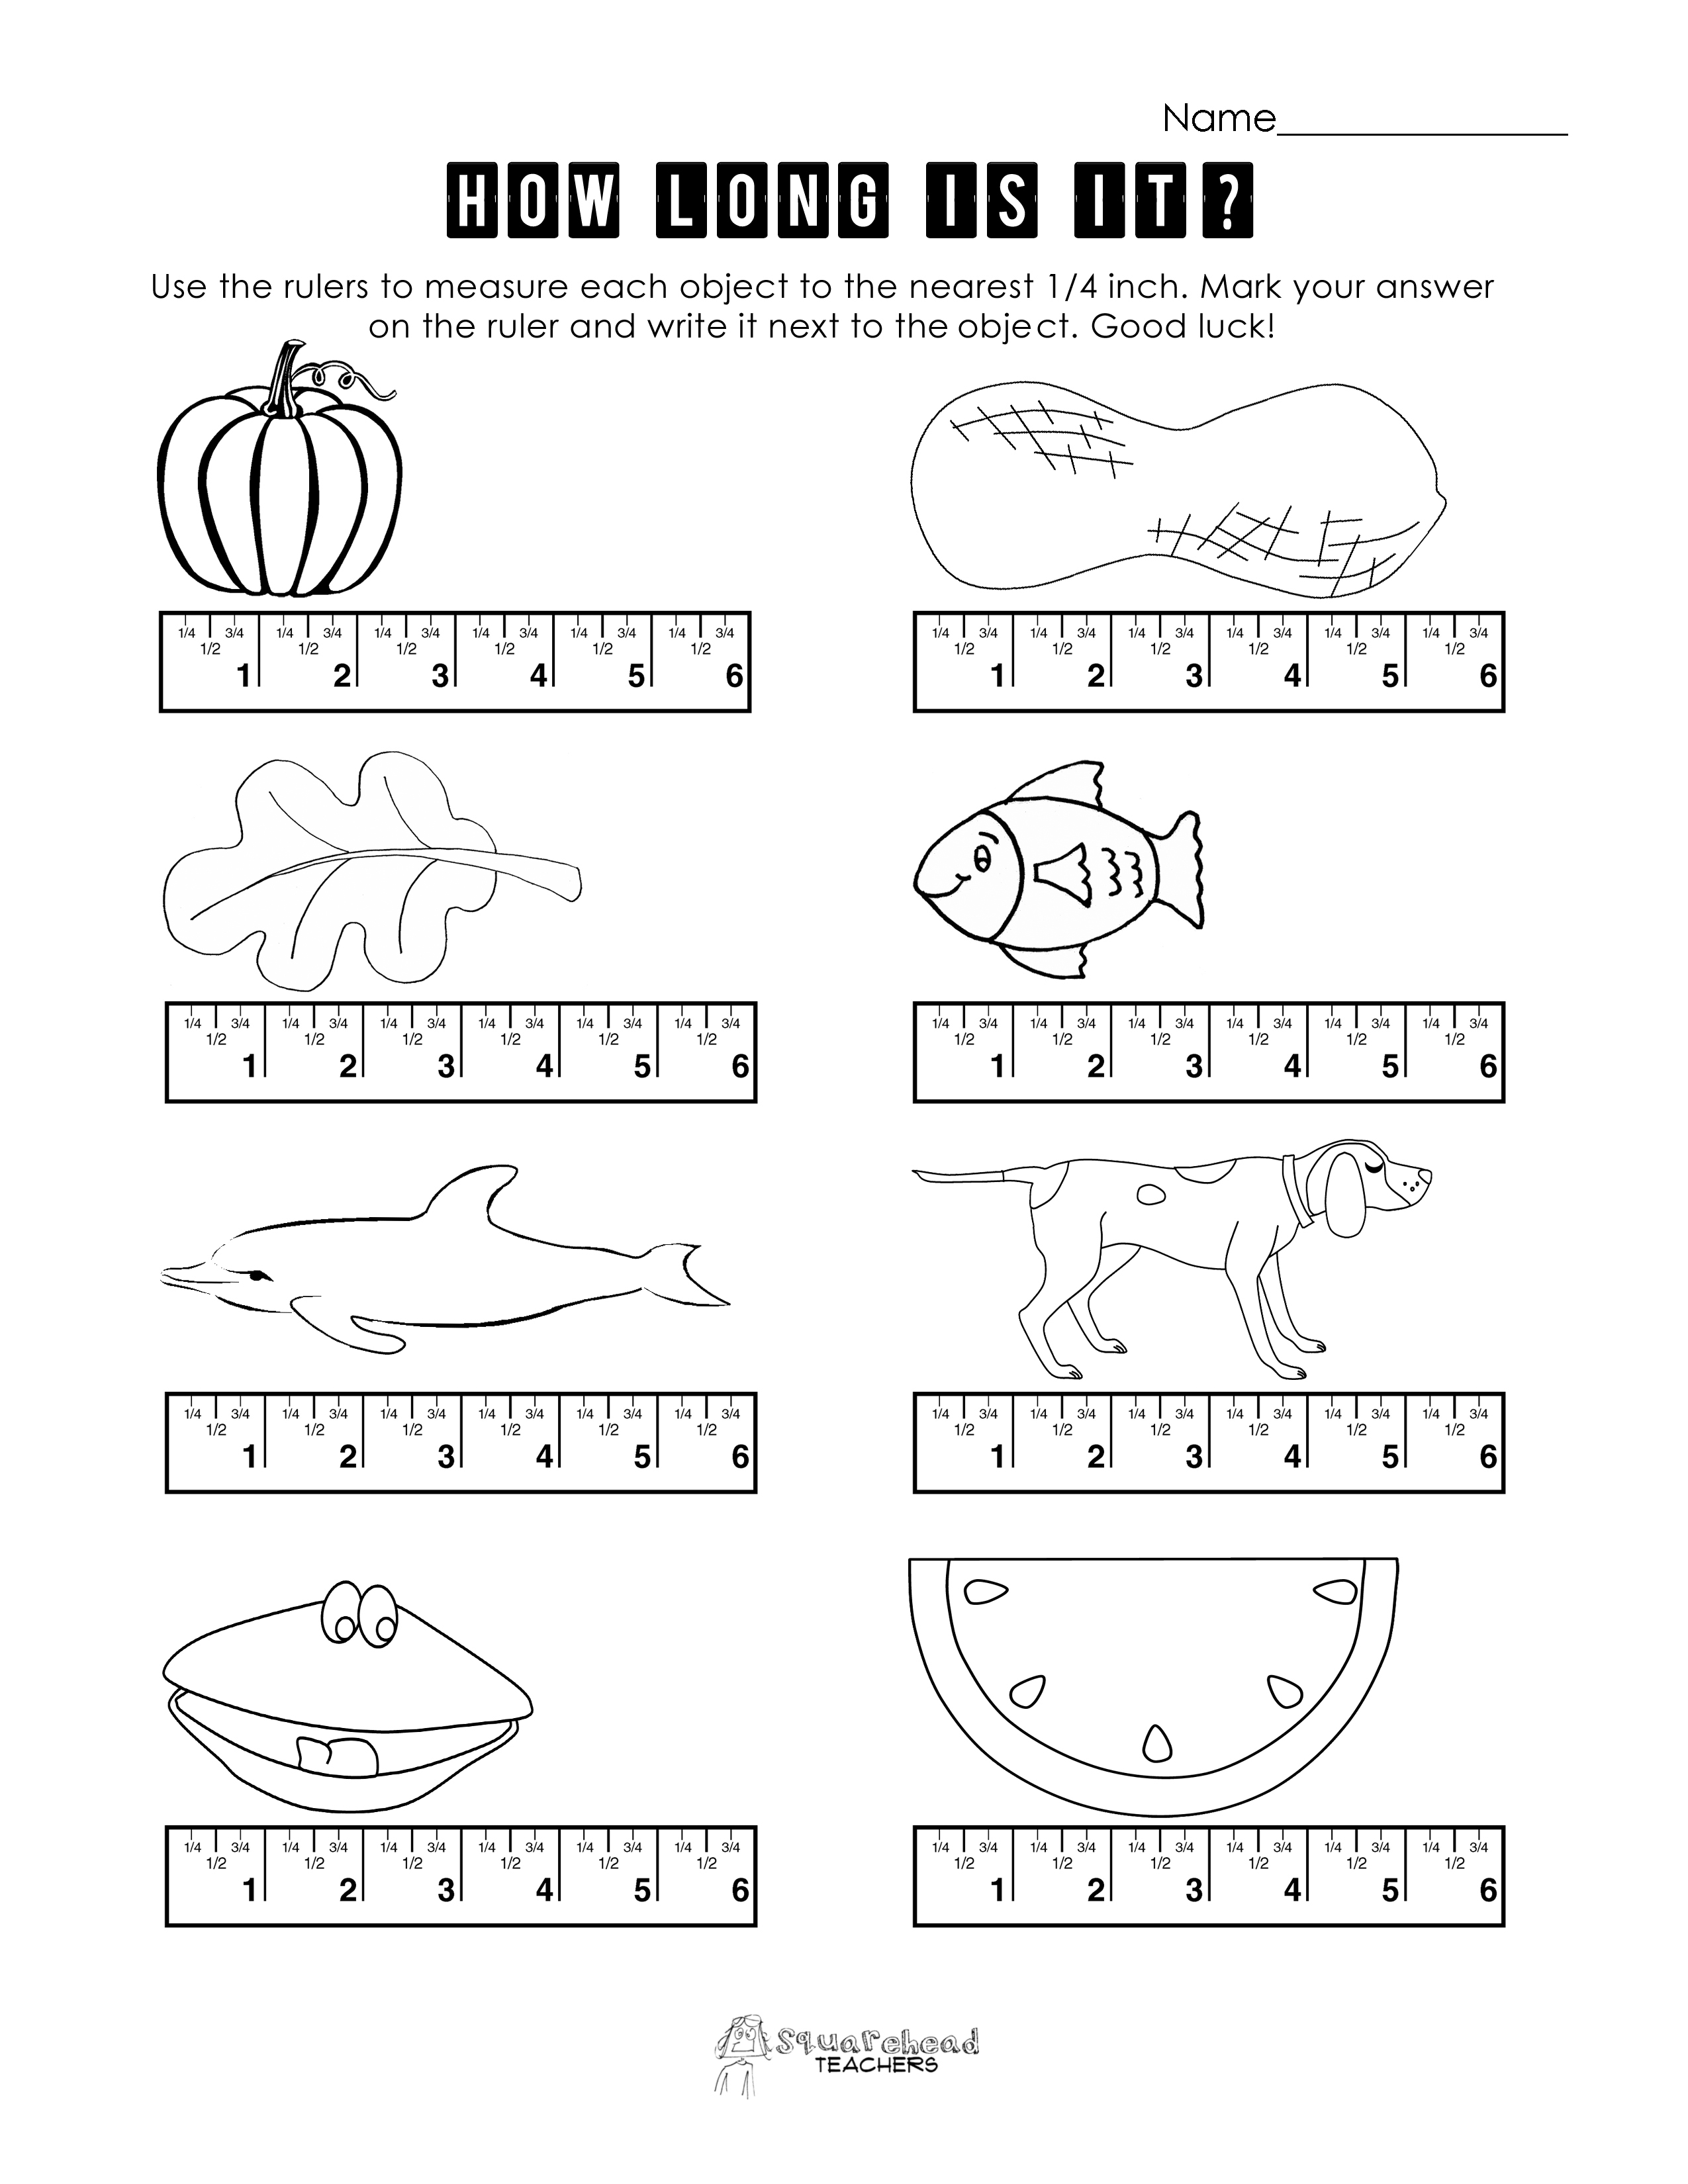 Measurement Practice 2 – Ruler Measurements Worksheets